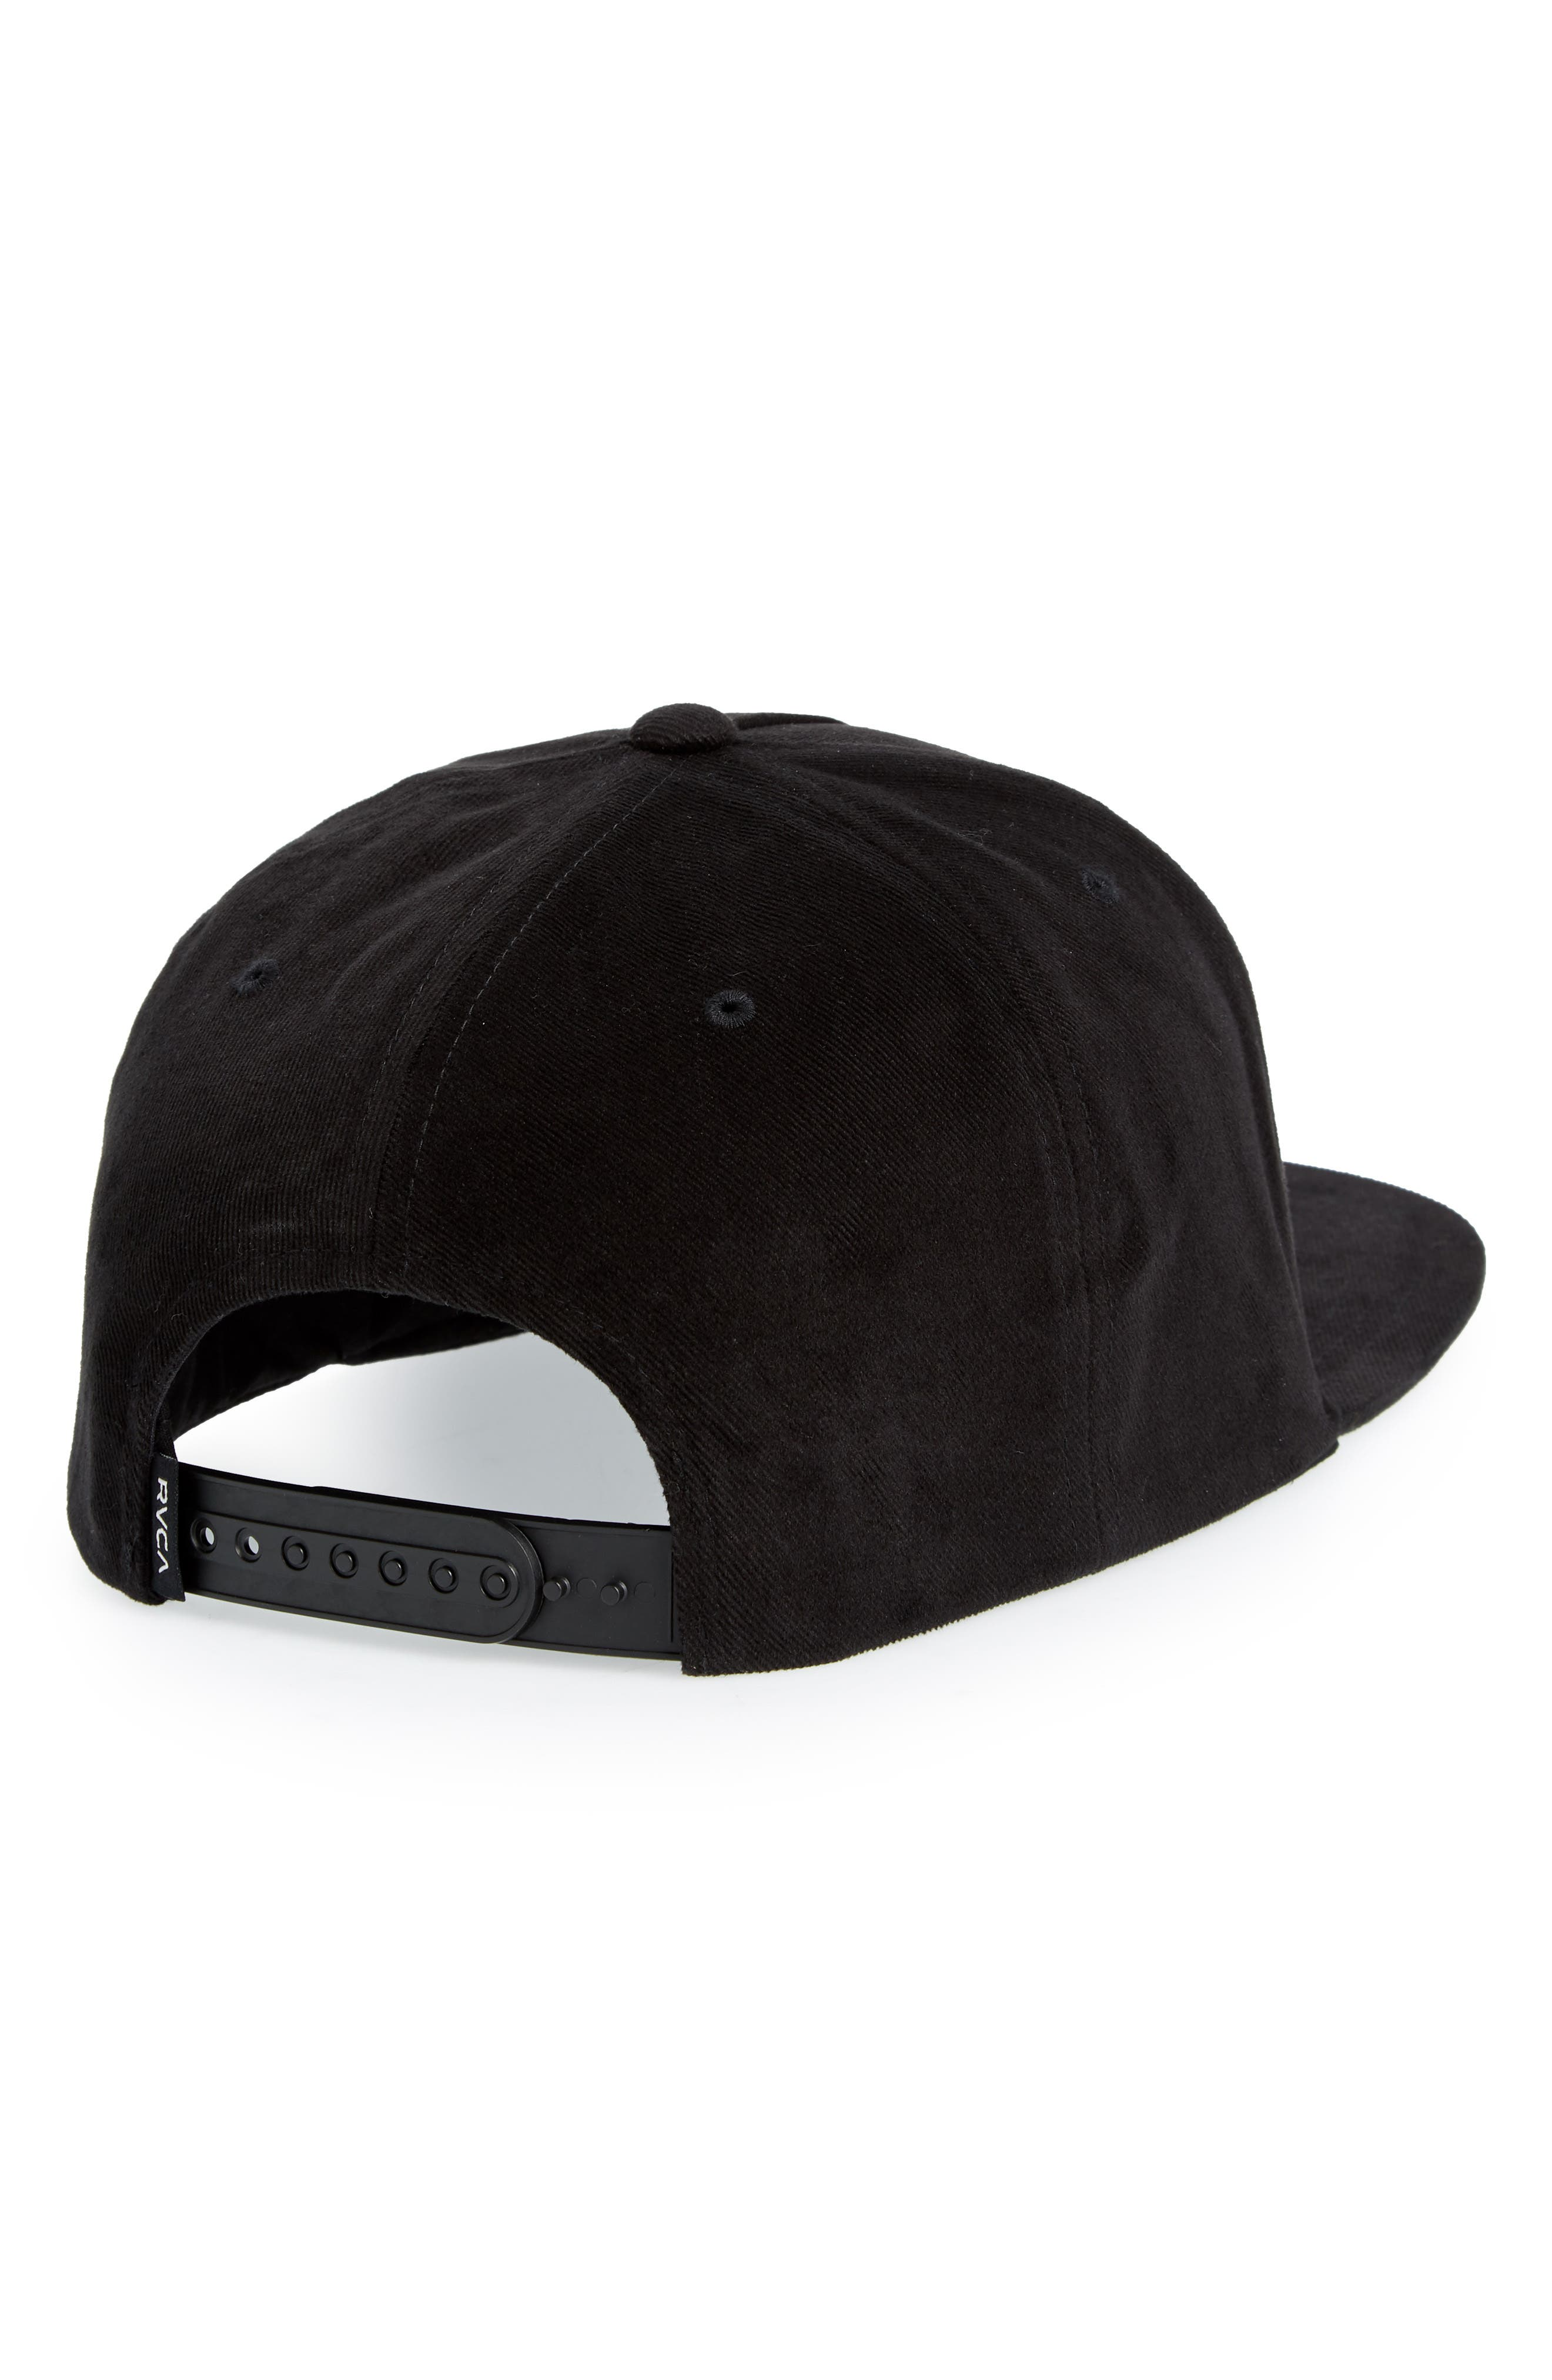 Neo Patch Snapback Hat,                             Alternate thumbnail 2, color,                             Black